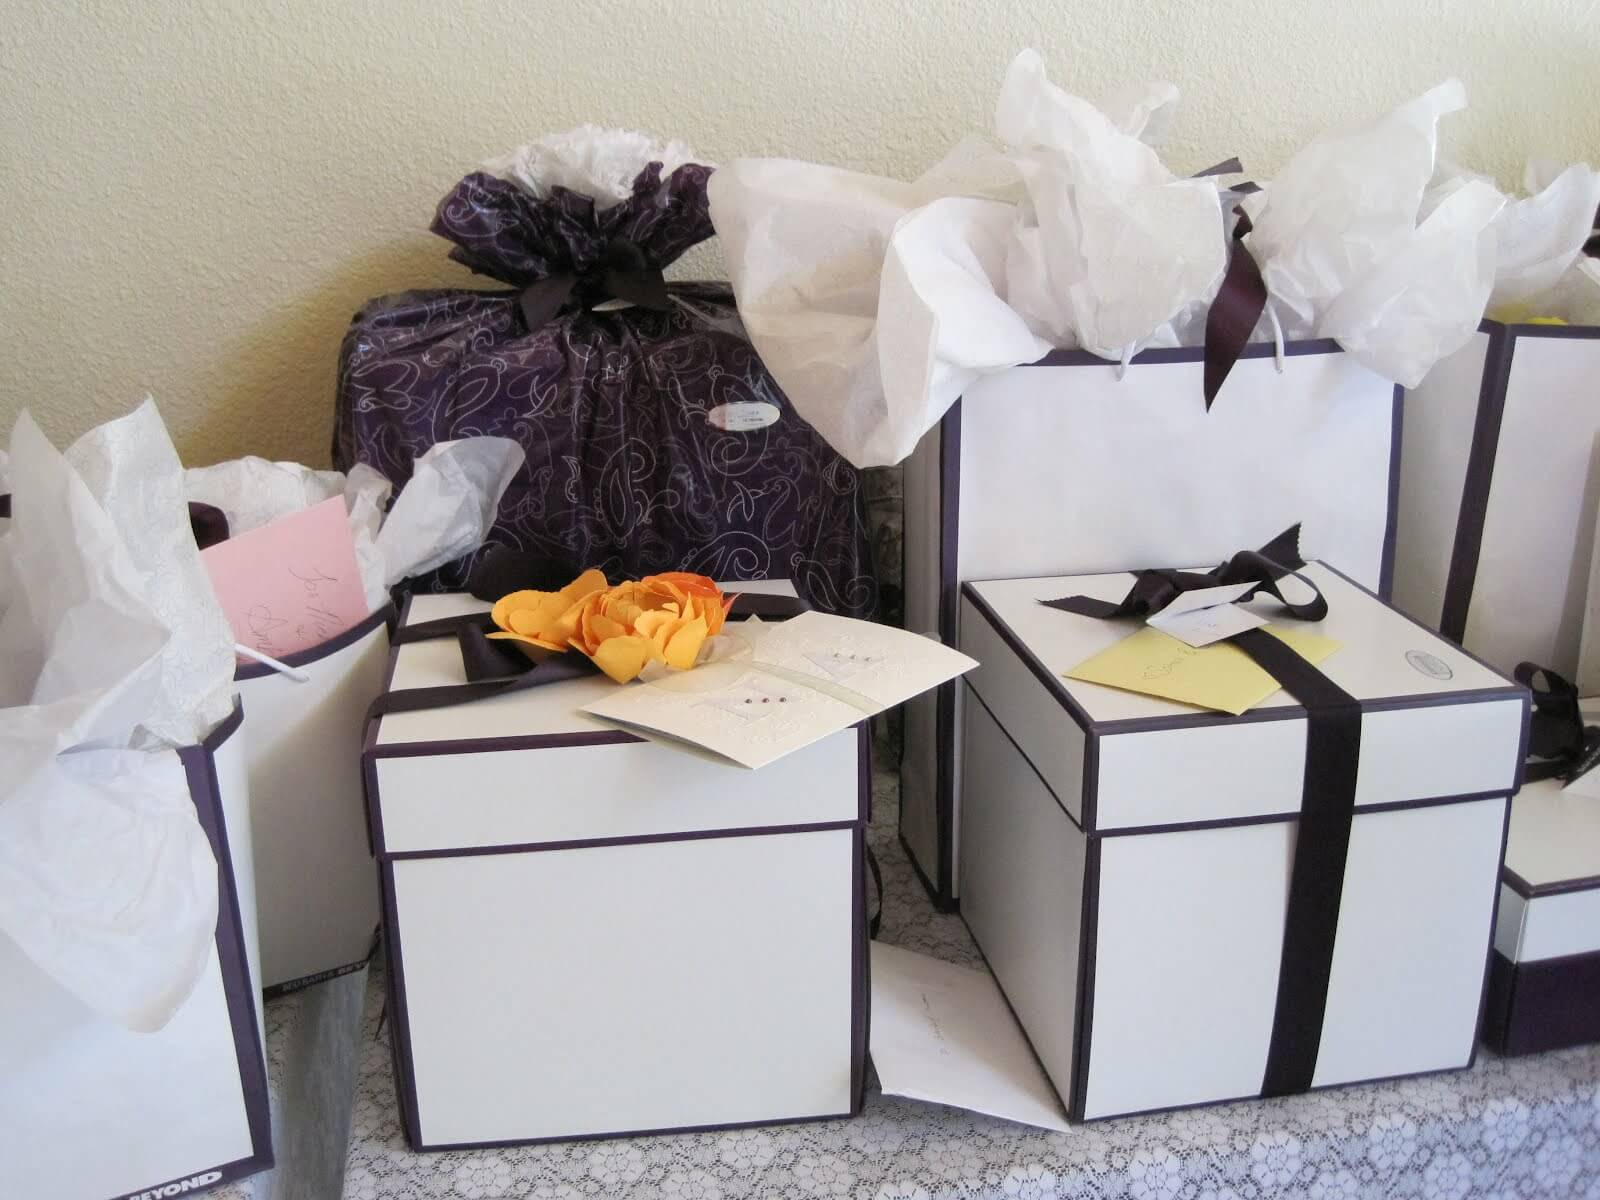 How Many Gifts To Register For Wedding: Top Wedding Registry Tips